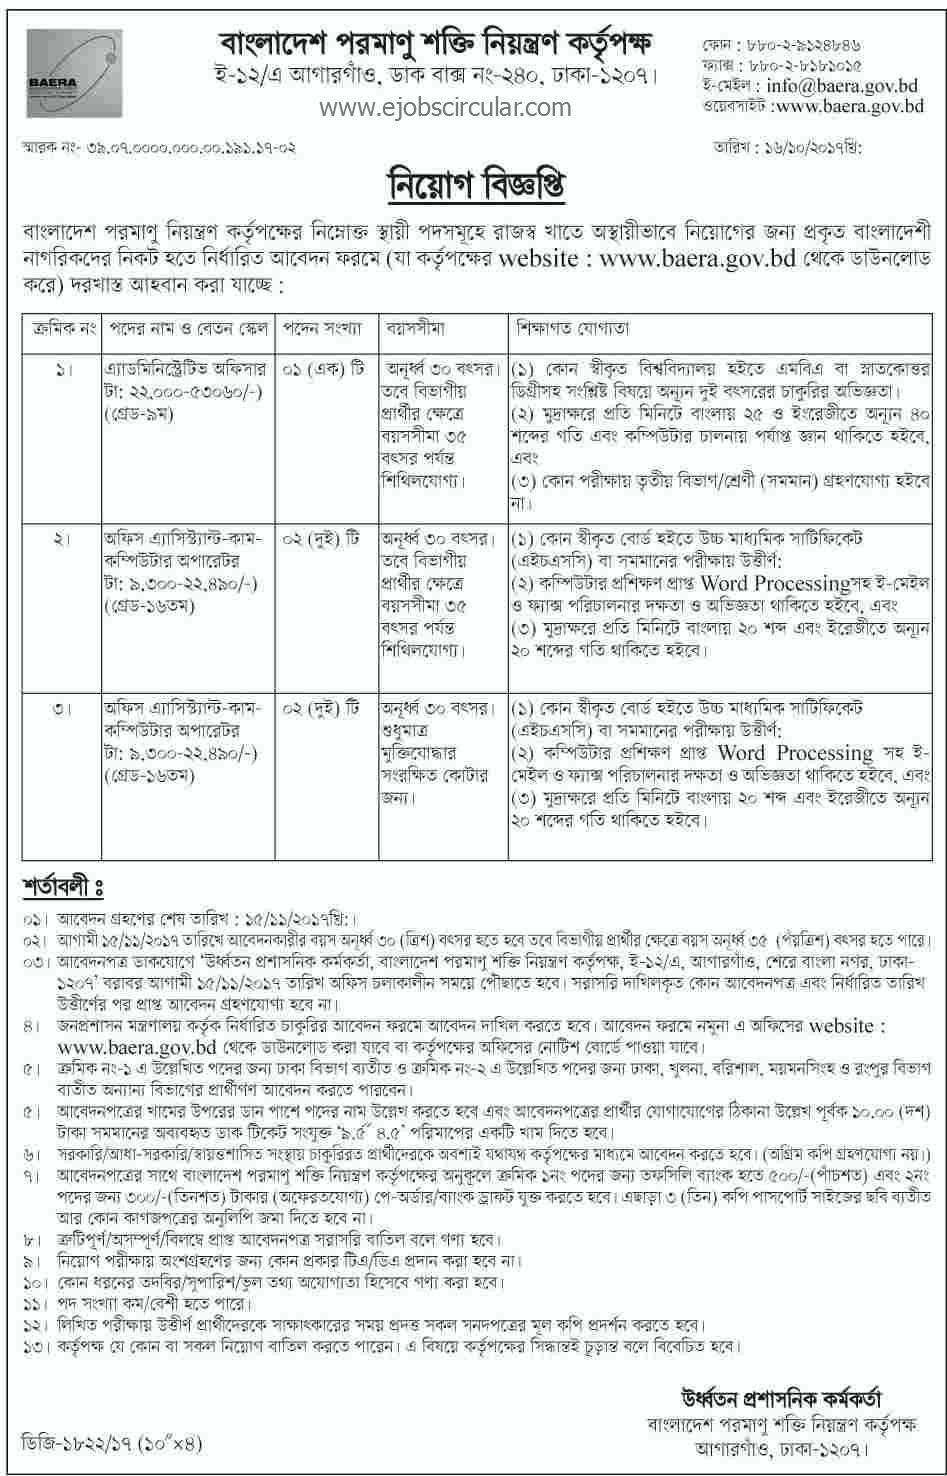 Bangladesh Atomic Energy Commission Job Circular 2017 2